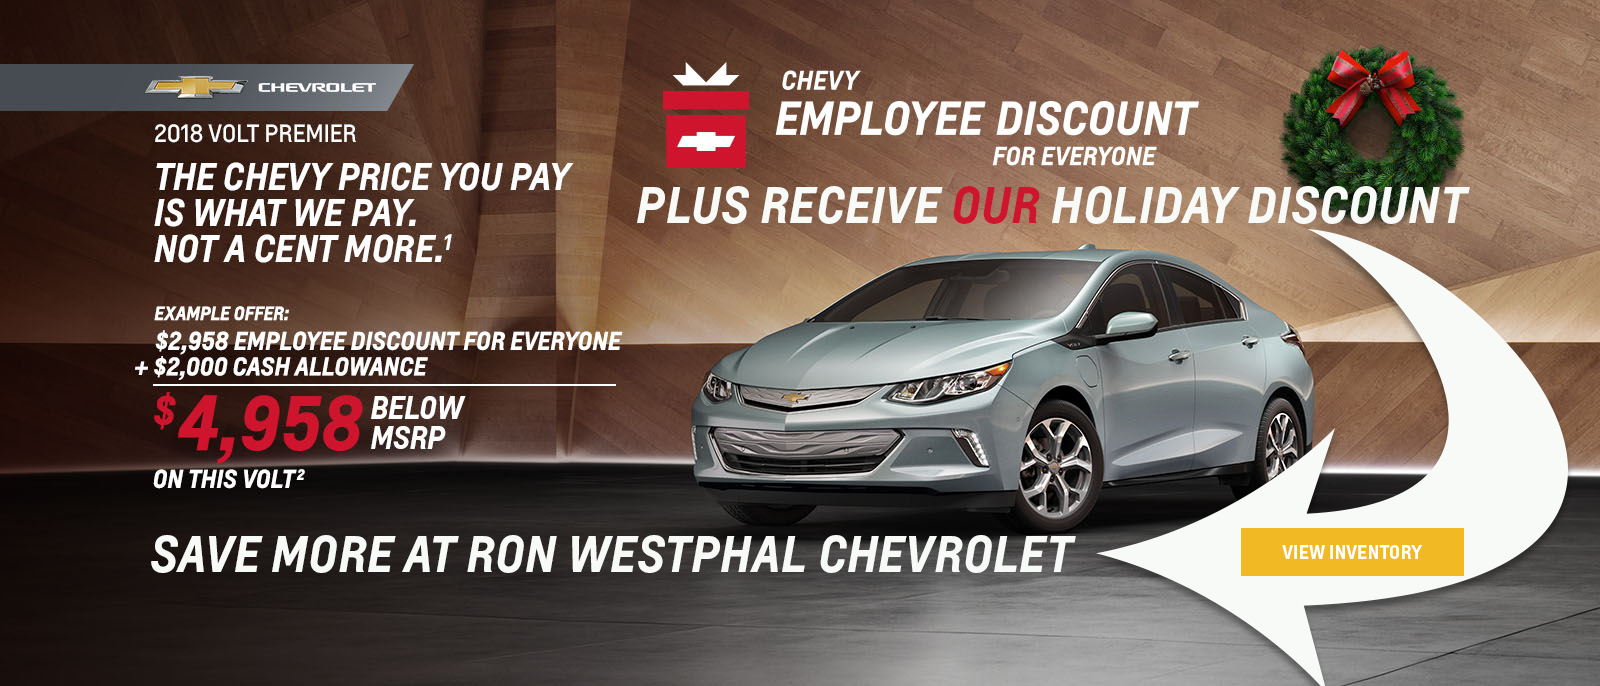 GM Employee Pricing for Everyone